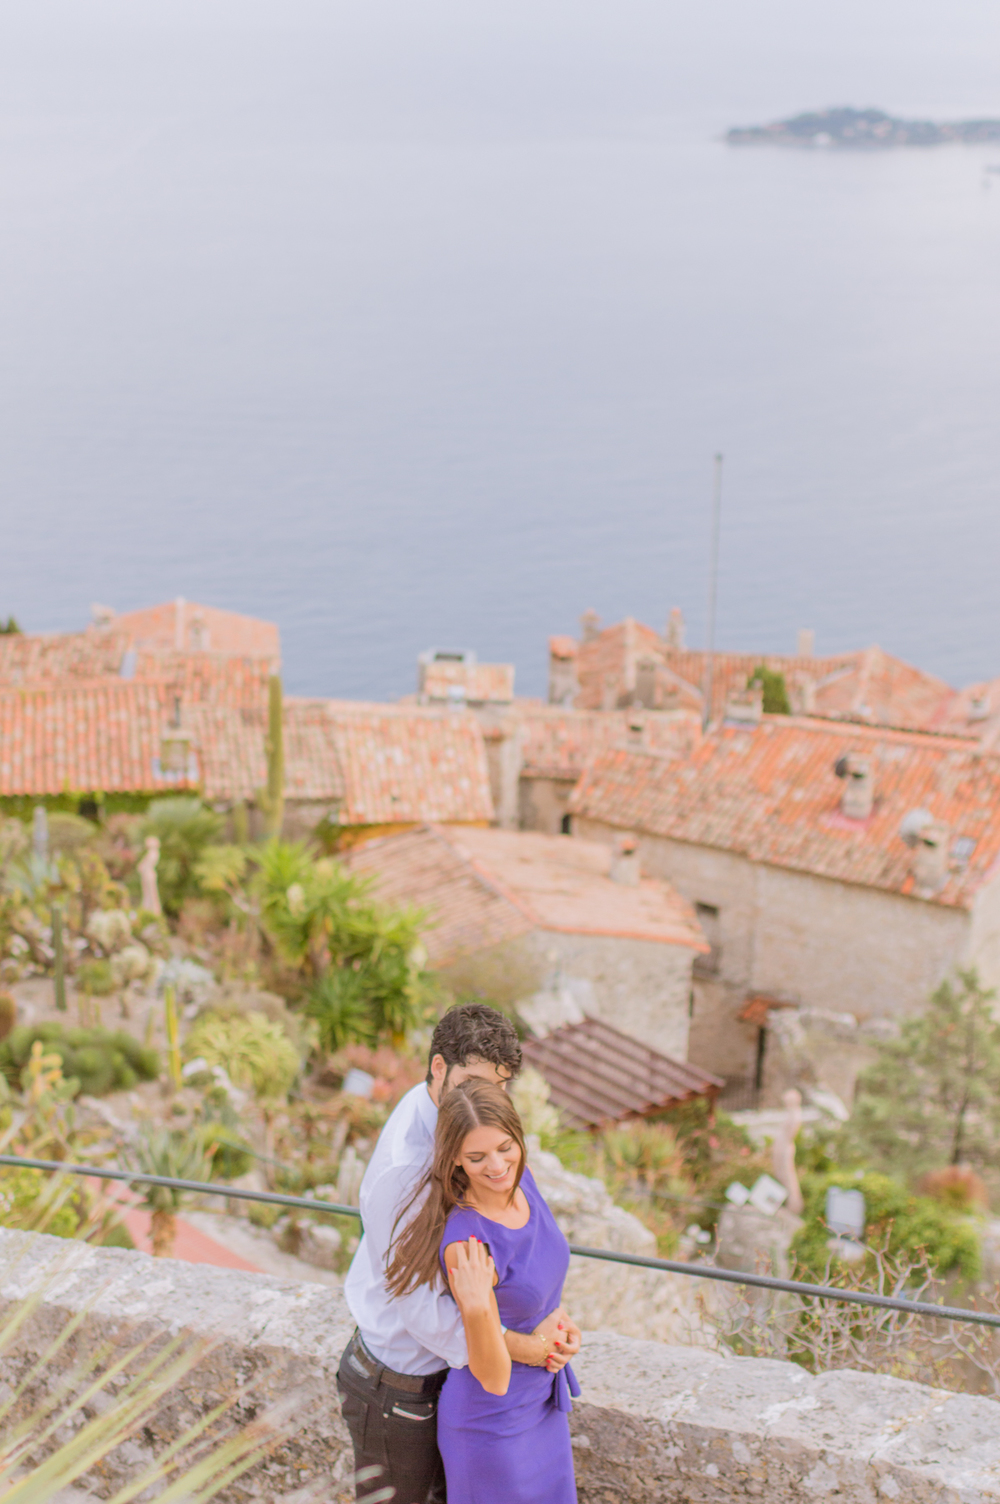 FLYTOGRAPHER Vacation Photographer in French Riviera - James